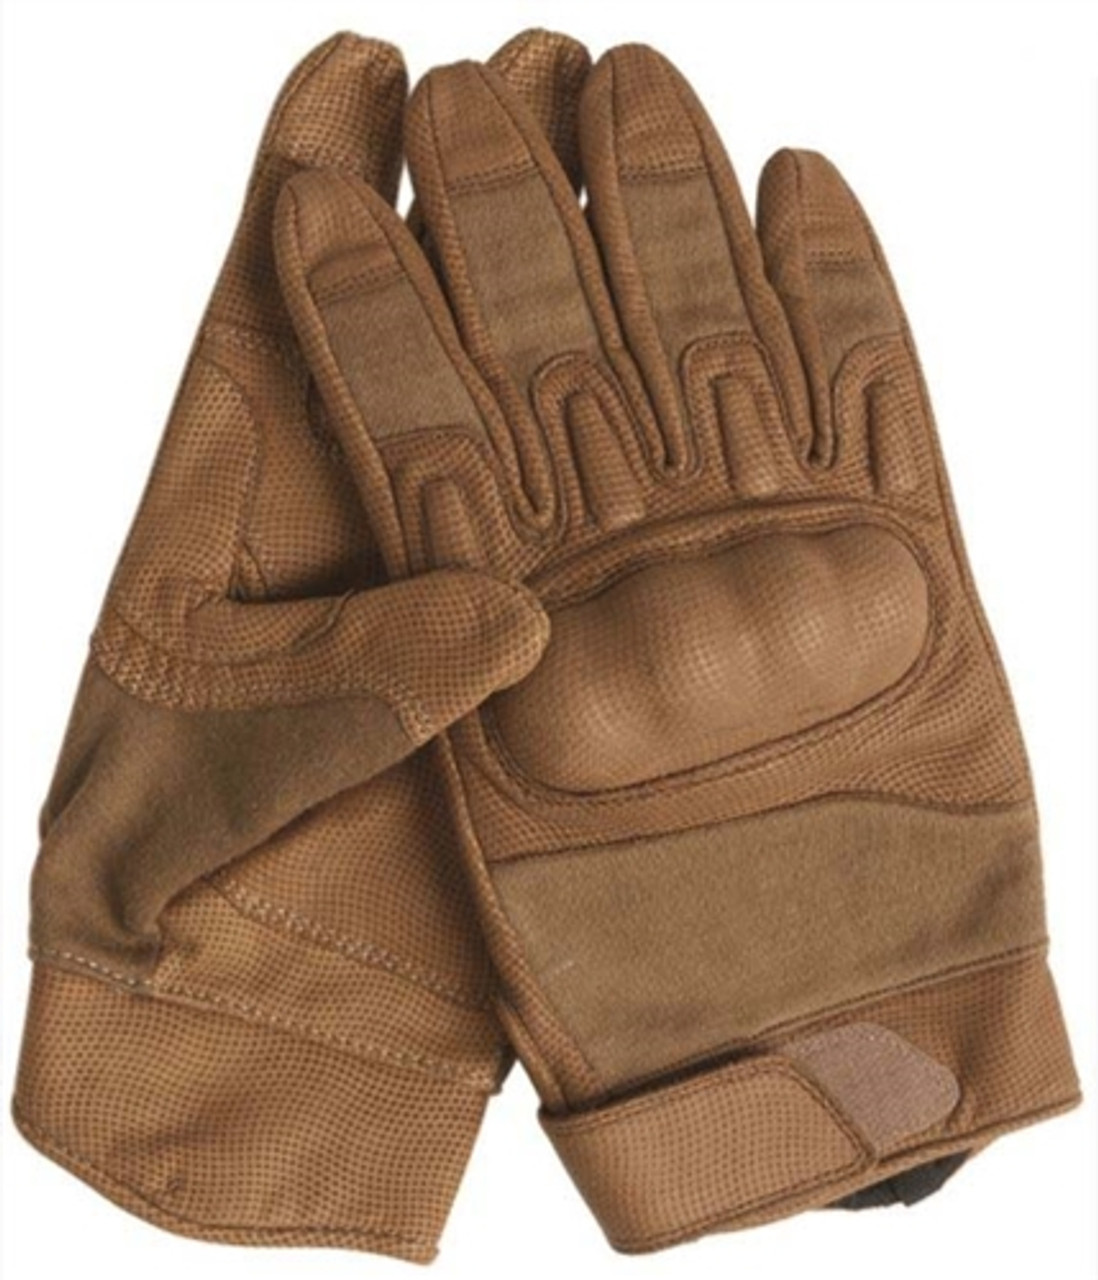 Mil-Tec Nomex Padded Knuckle Gloves from Hessen Antique